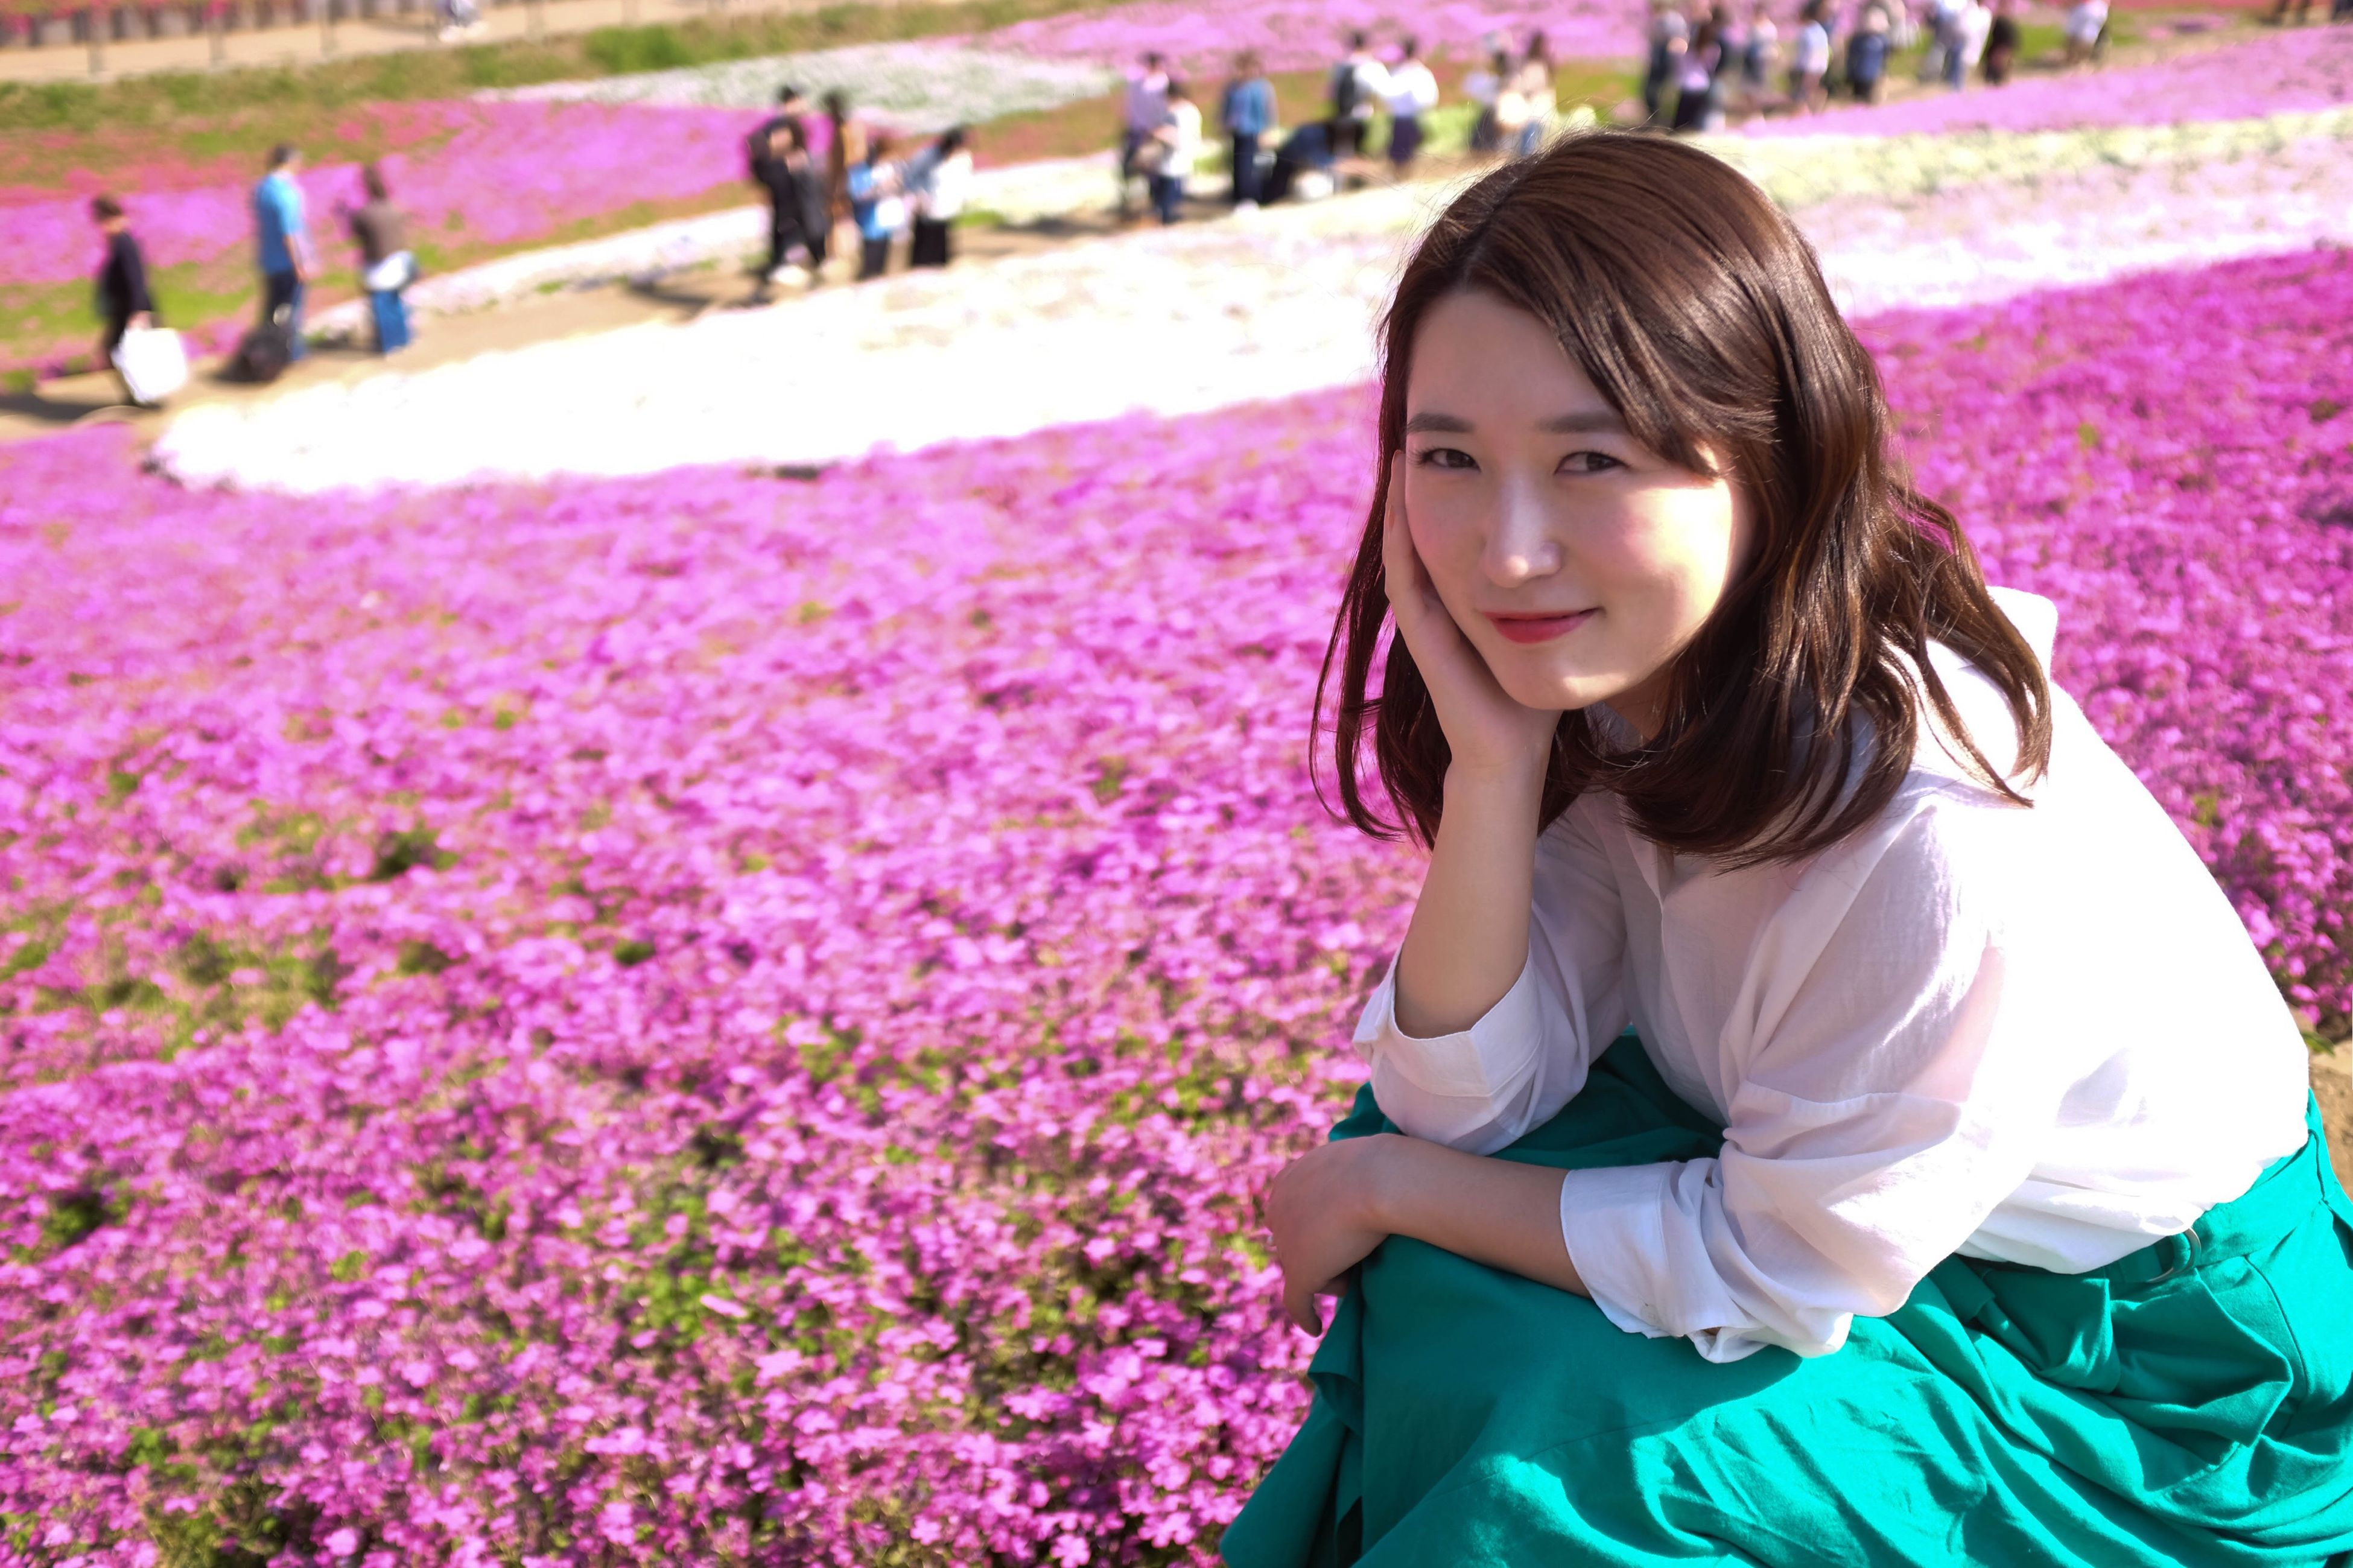 real people, one person, young adult, beautiful woman, purple, casual clothing, looking at camera, flower, young women, day, outdoors, pink color, focus on foreground, leisure activity, portrait, lifestyles, smiling, nature, people